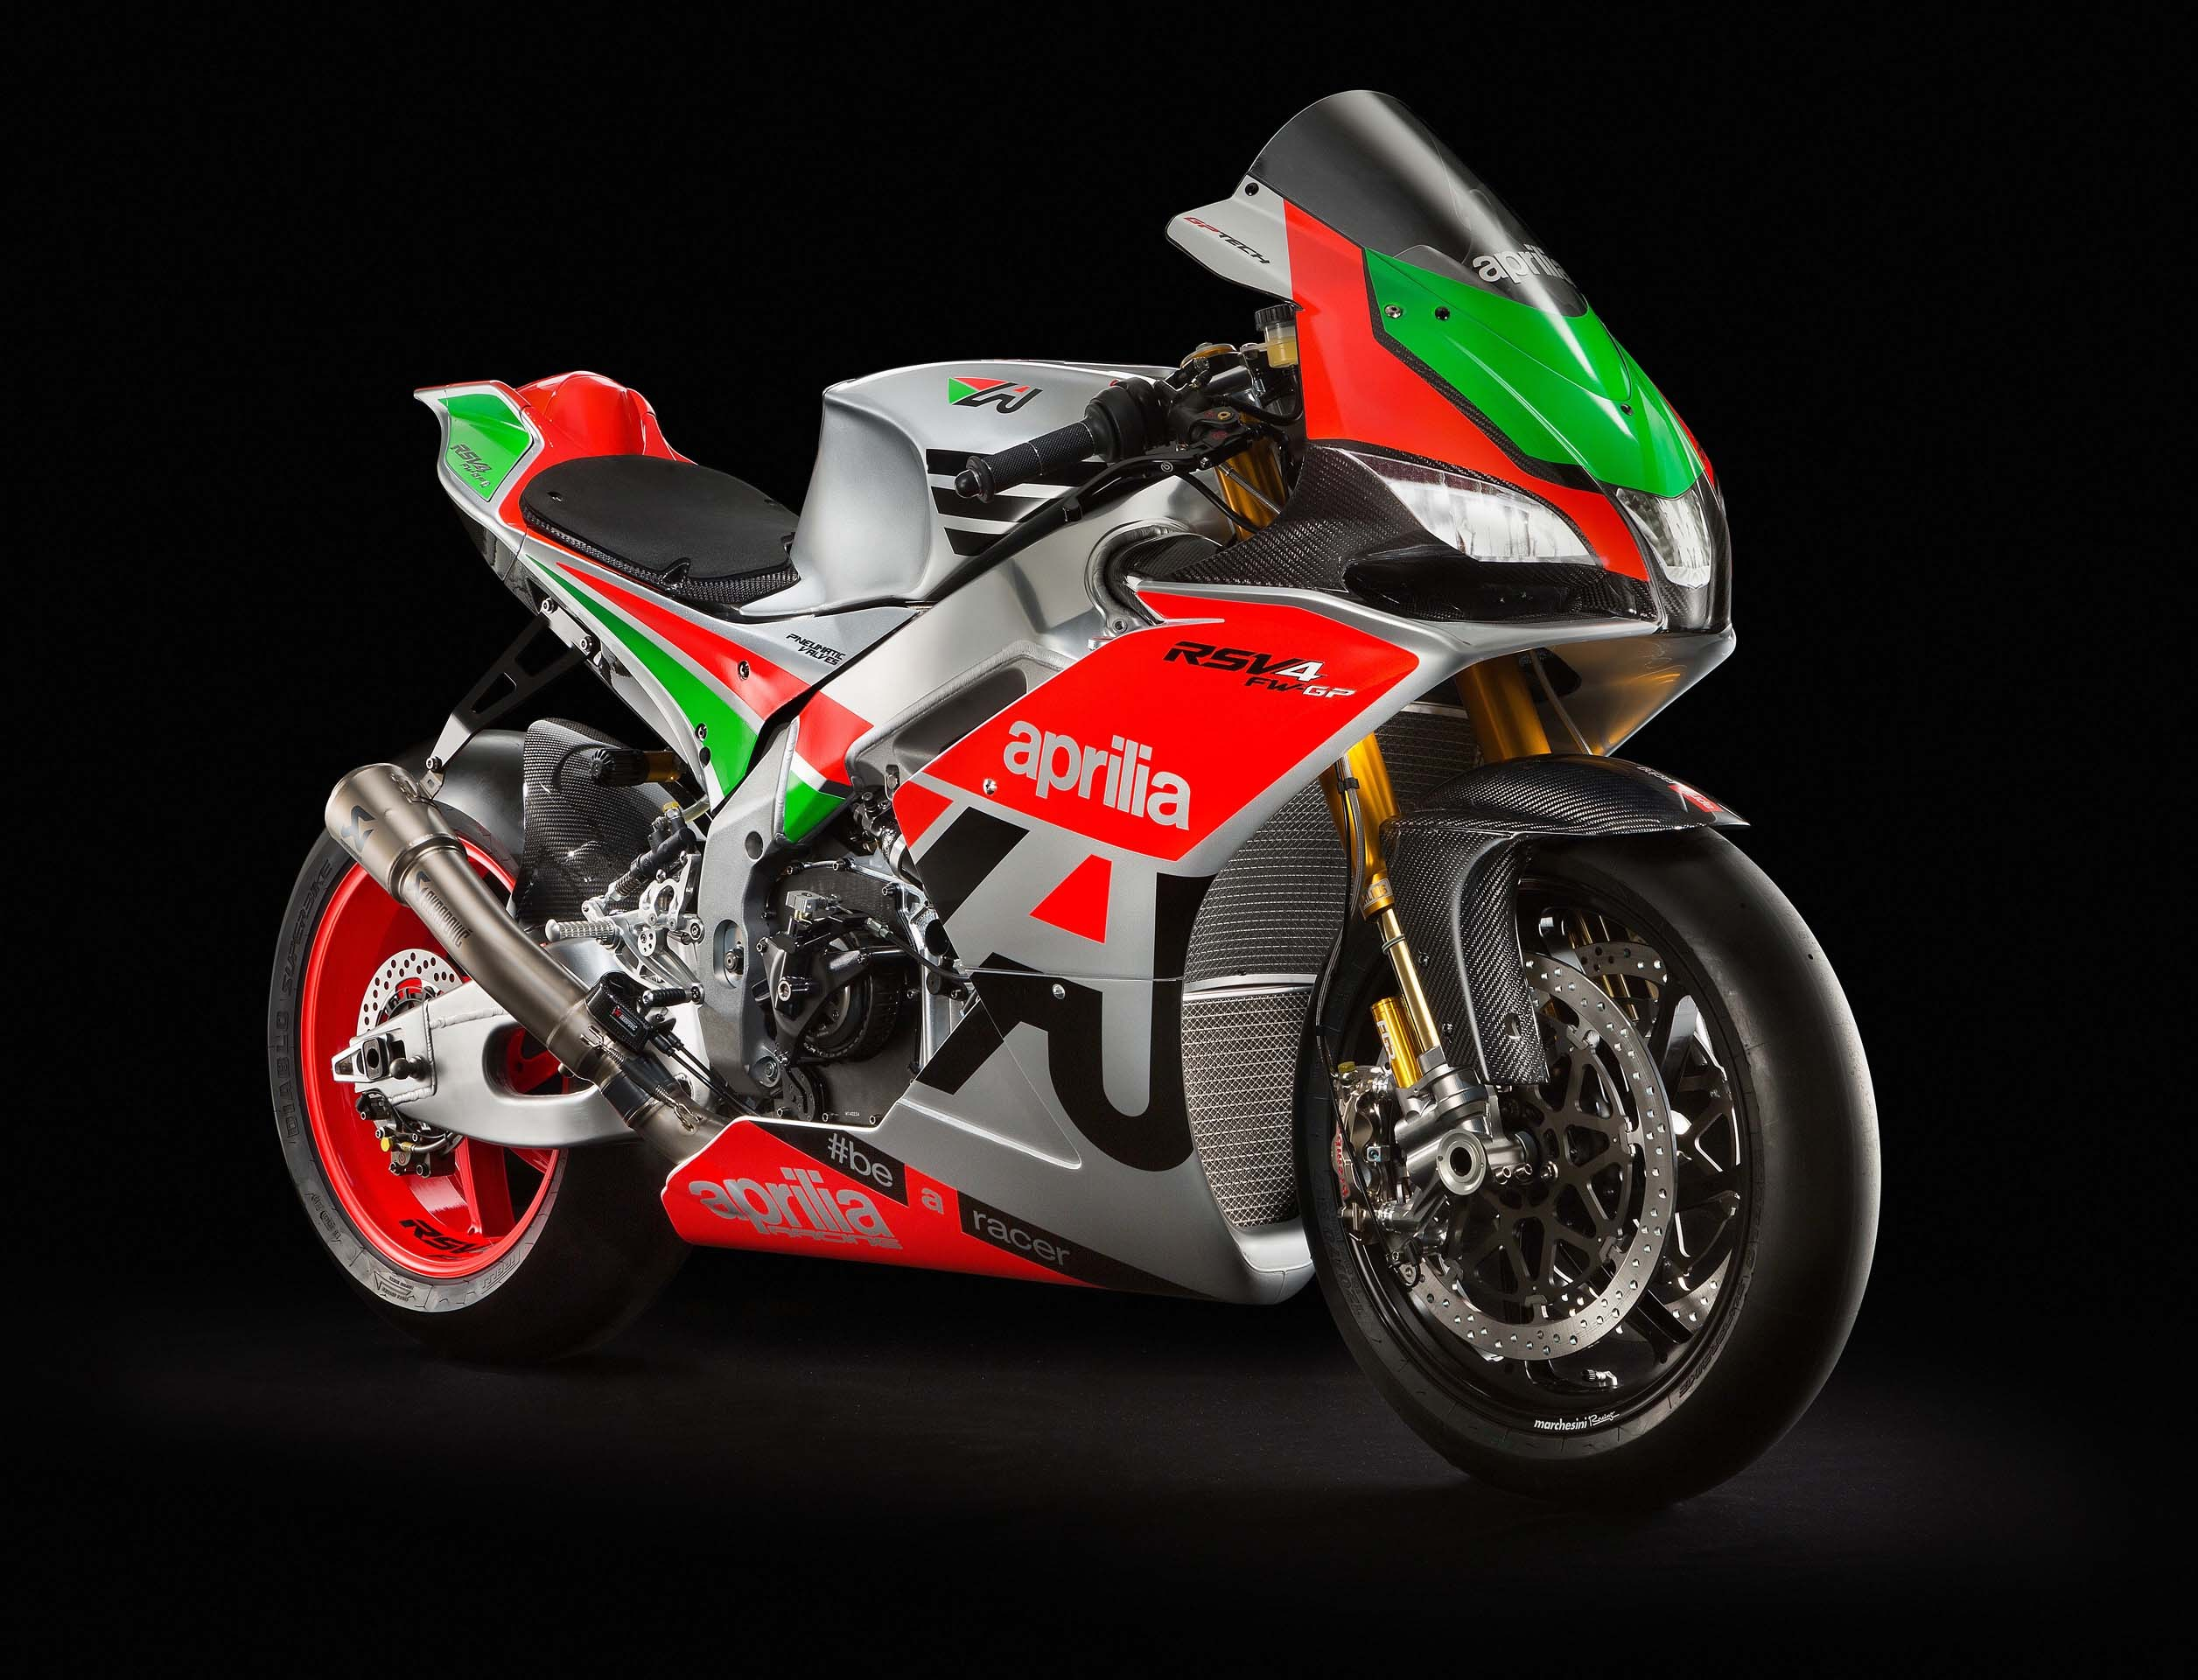 aprilia rsv4 r fw-gp unleashed - bikesrepublic